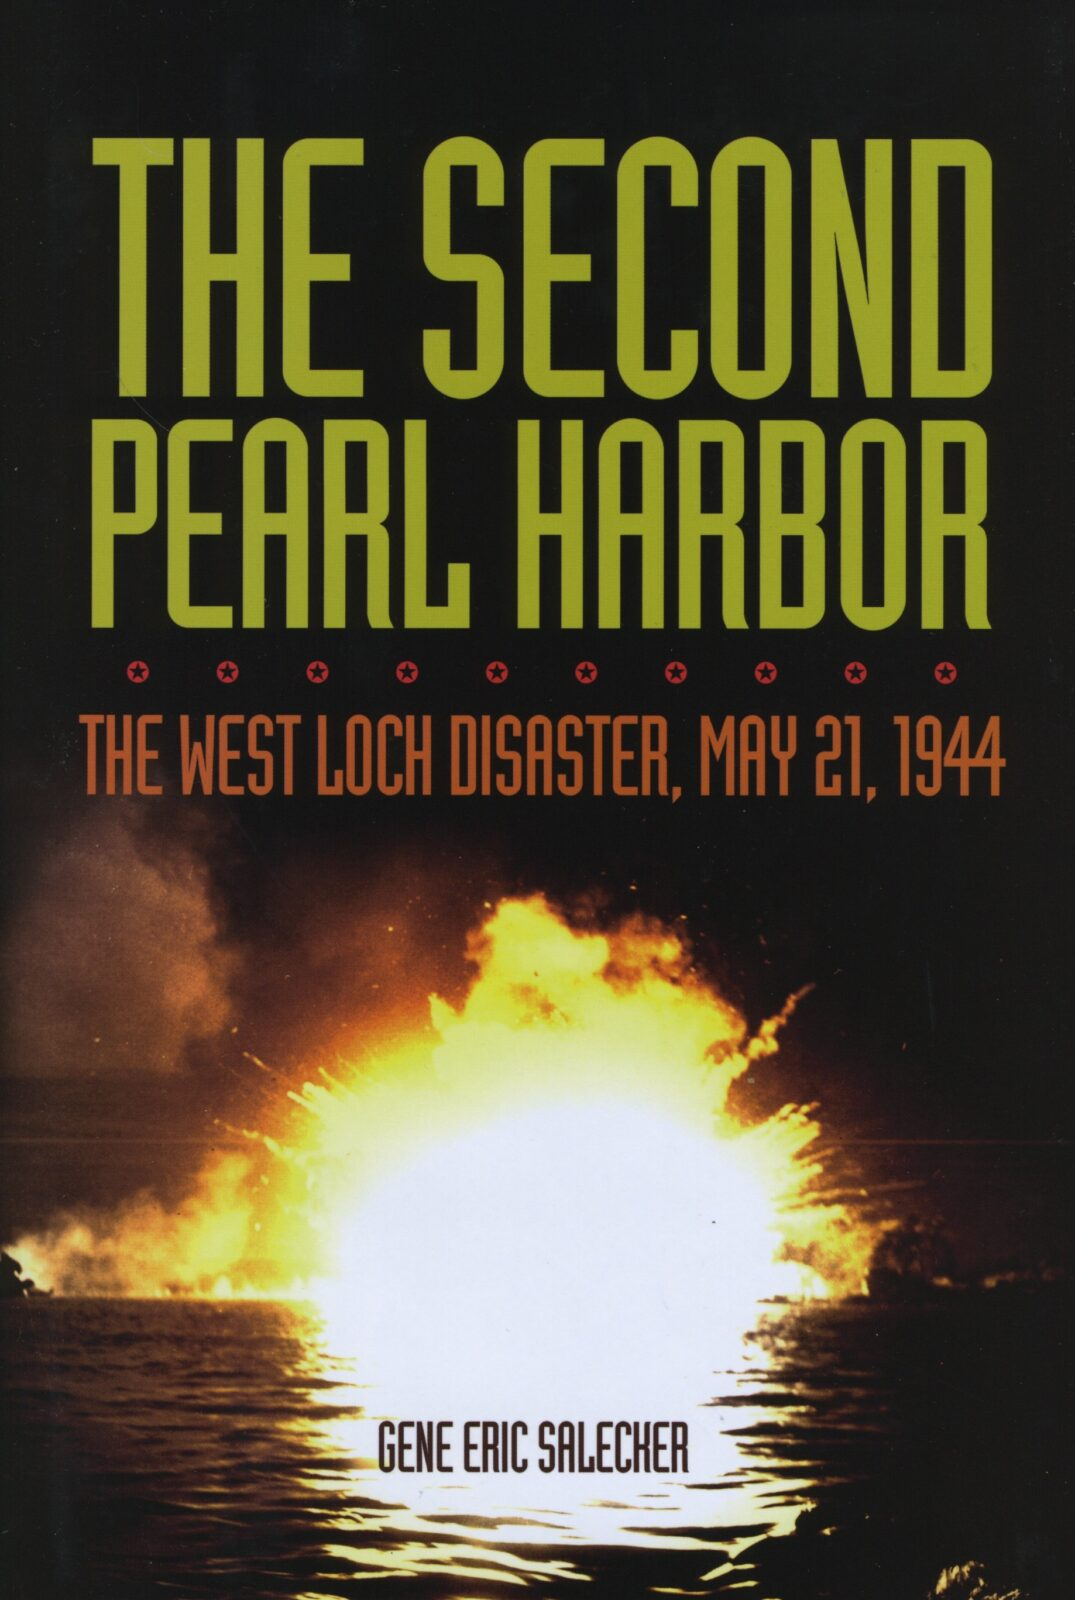 The Second Booke Of The Kings Commonly Called The Fourth: The Second Pearl Harbor: The West Loch